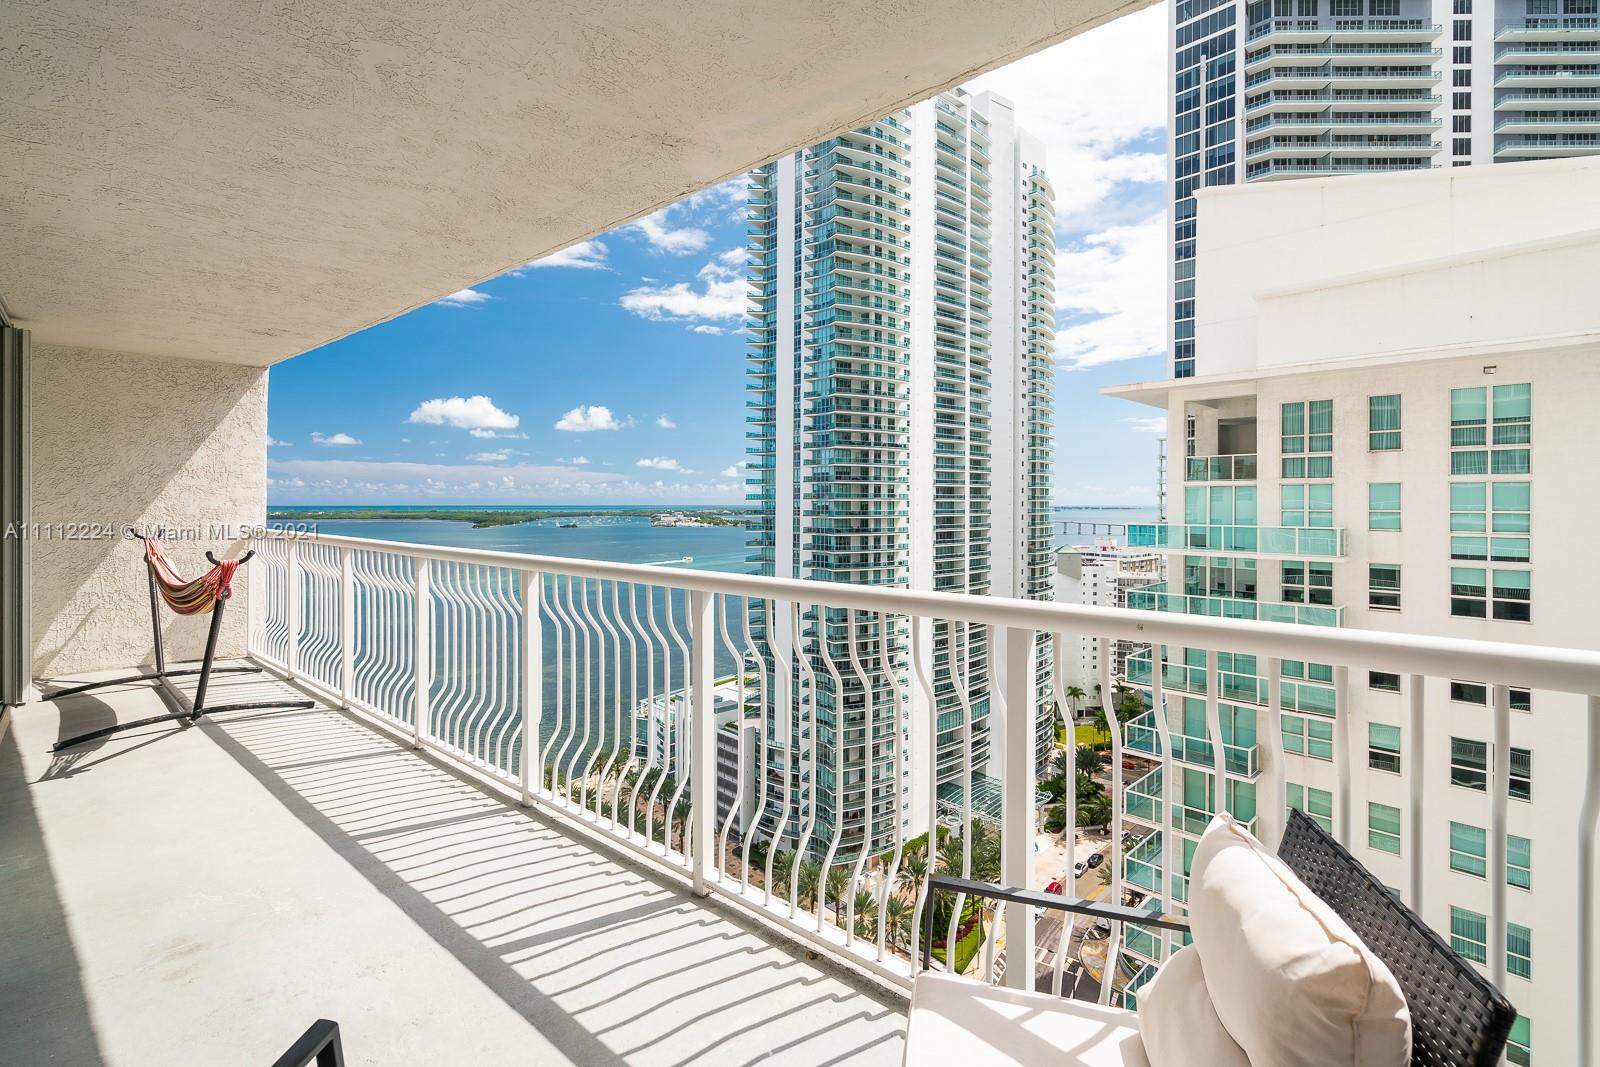 THE CLUB AT BRICKELL BAY Condo,For Sale,THE CLUB AT BRICKELL BAY Brickell,realty,broker,condos near me